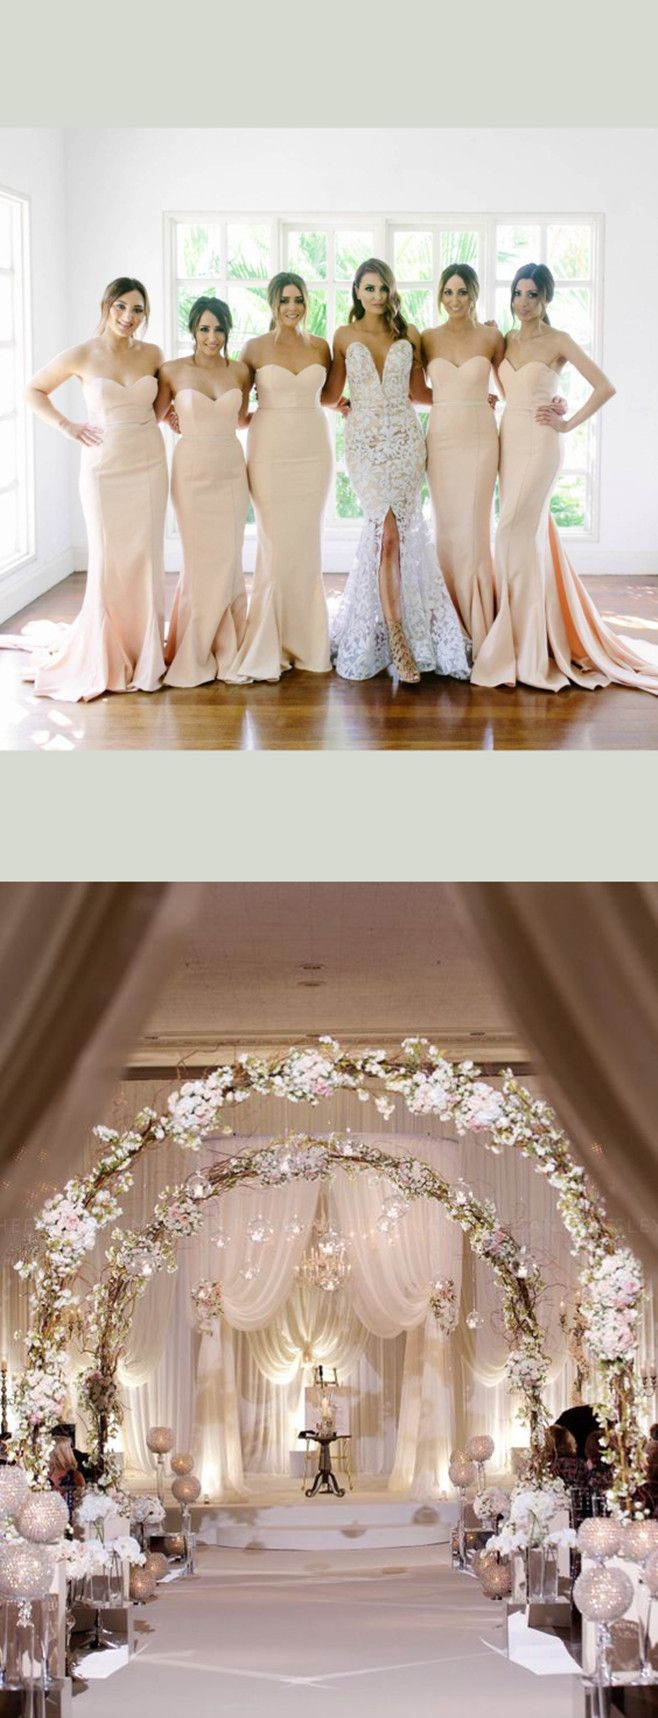 Best 25 bridesmaid dresses plus size ideas on pinterest dress best 25 bridesmaid dresses plus size ideas on pinterest dress cuts plus size bridesmaid and bridesmaid dresses ombrellifo Image collections